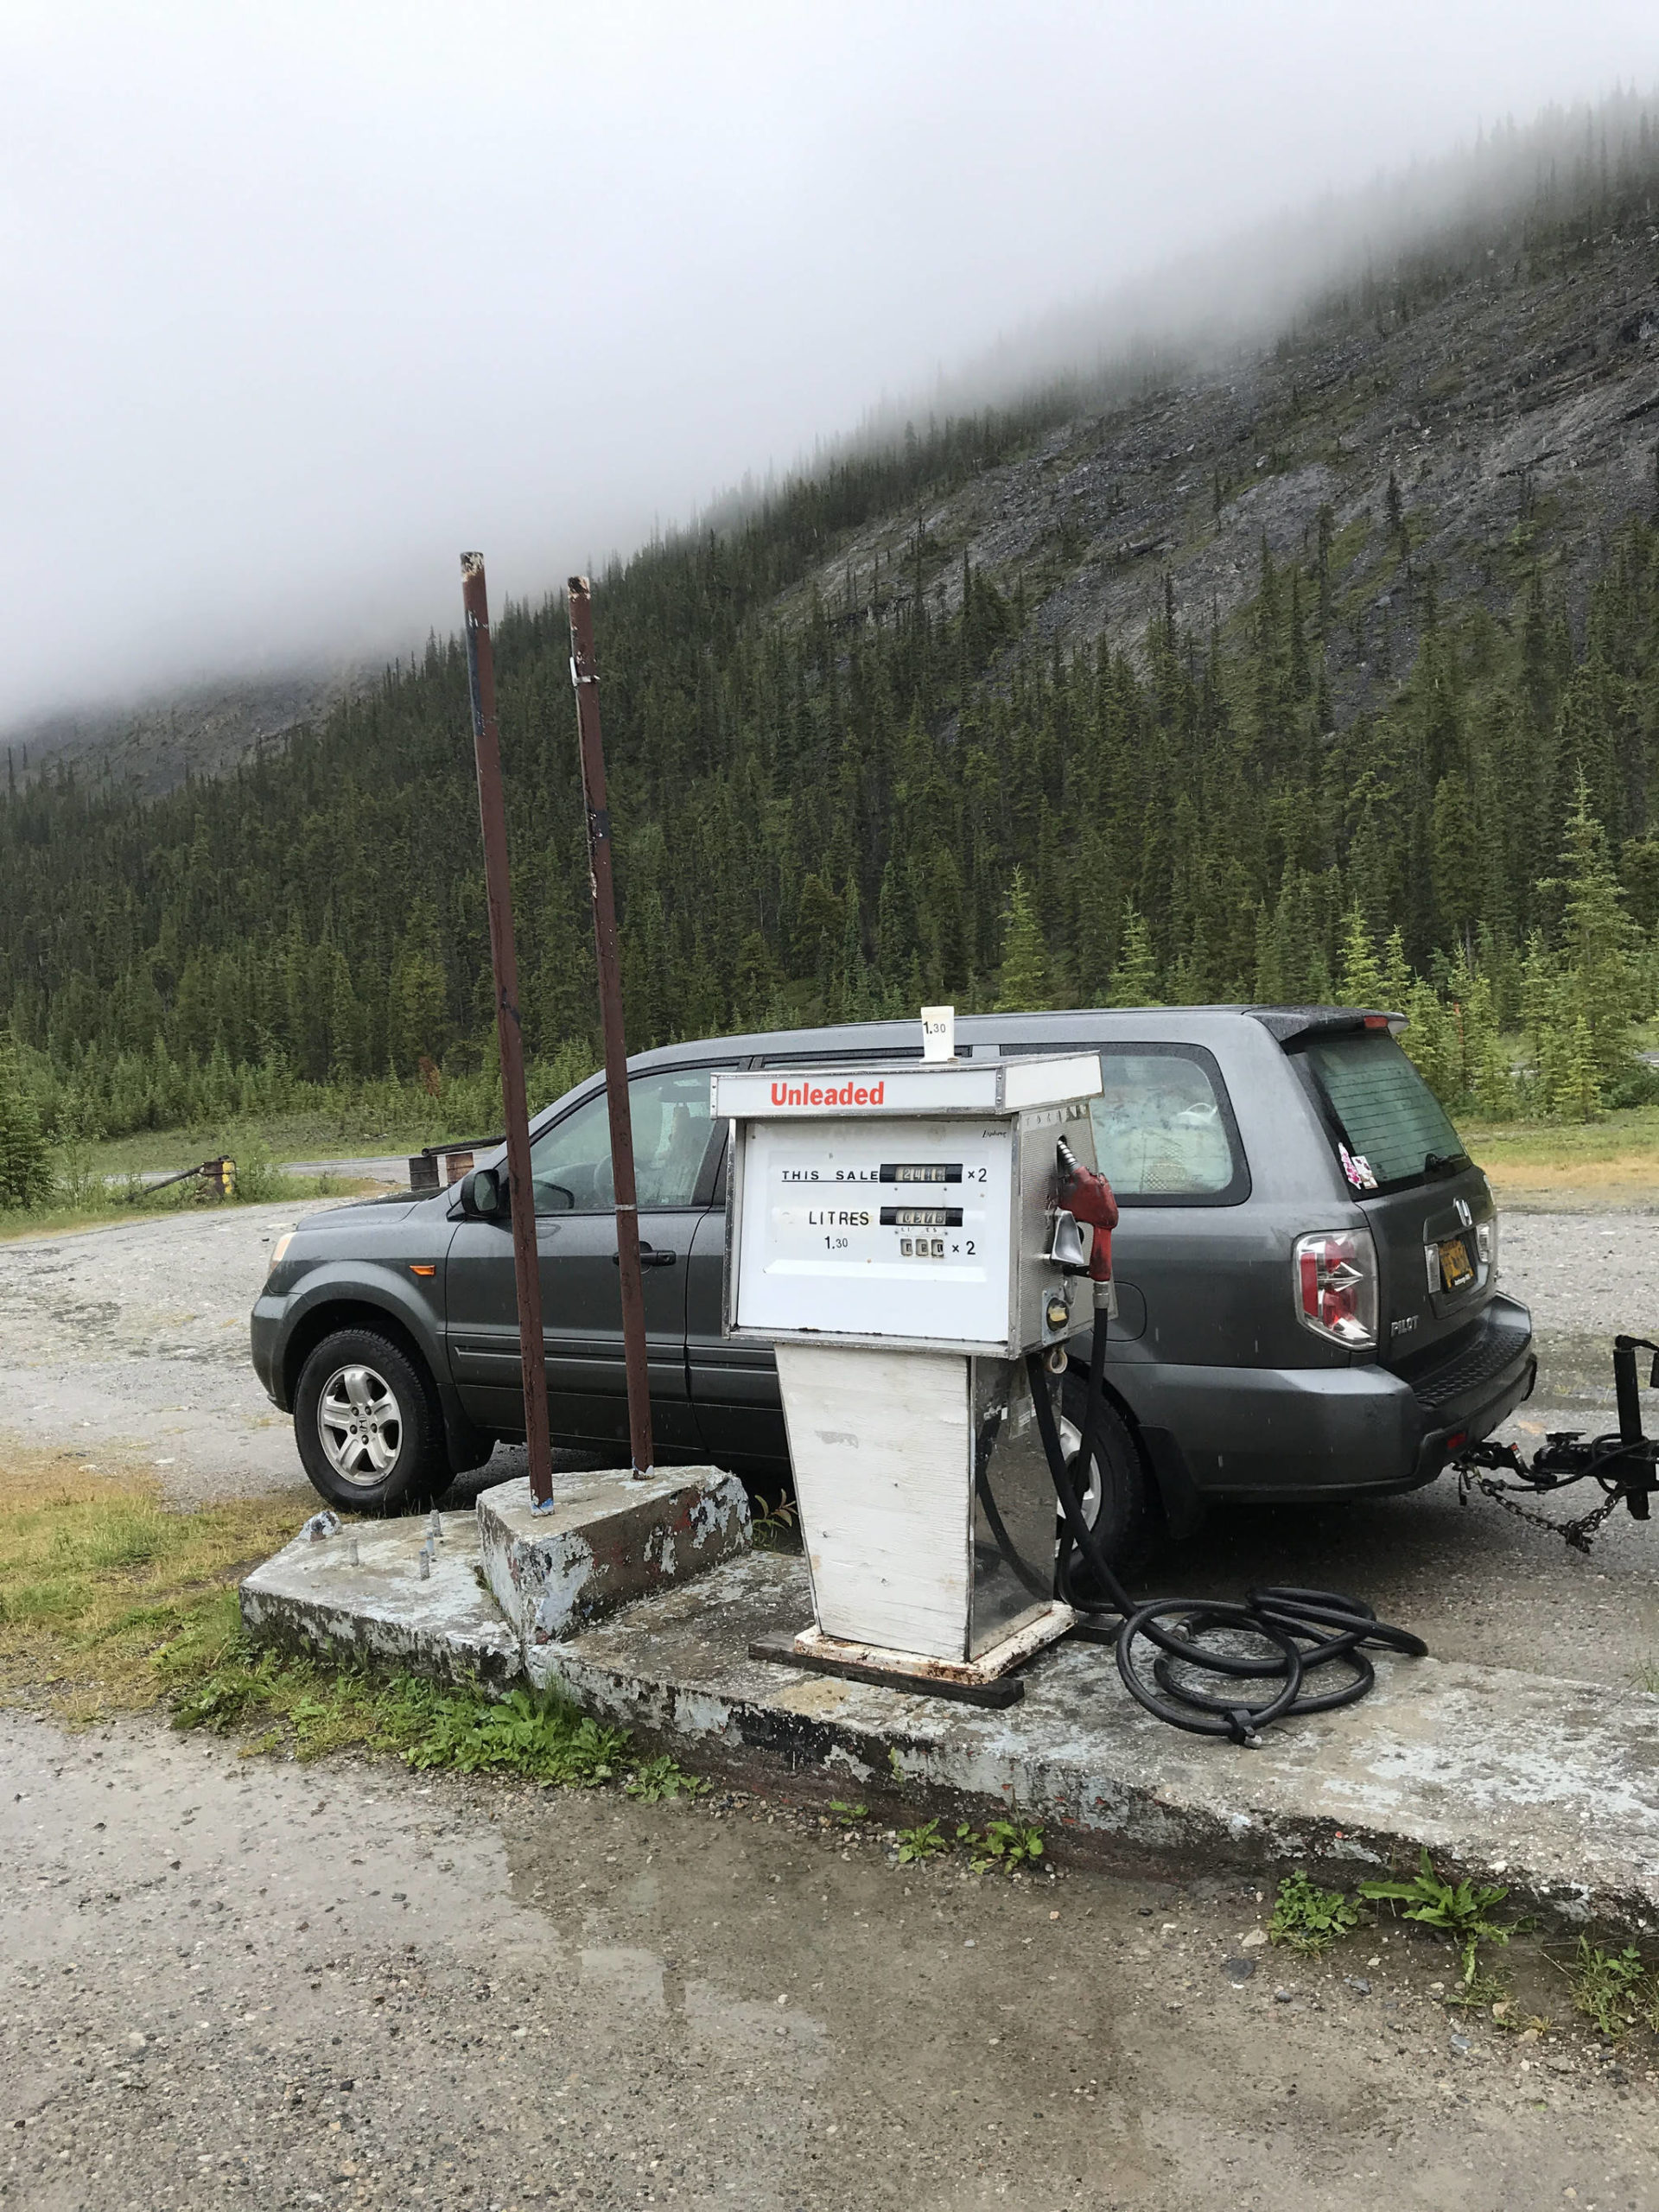 Getting gas along the Alaska Highway on July 16, 2020. (Photo provided)